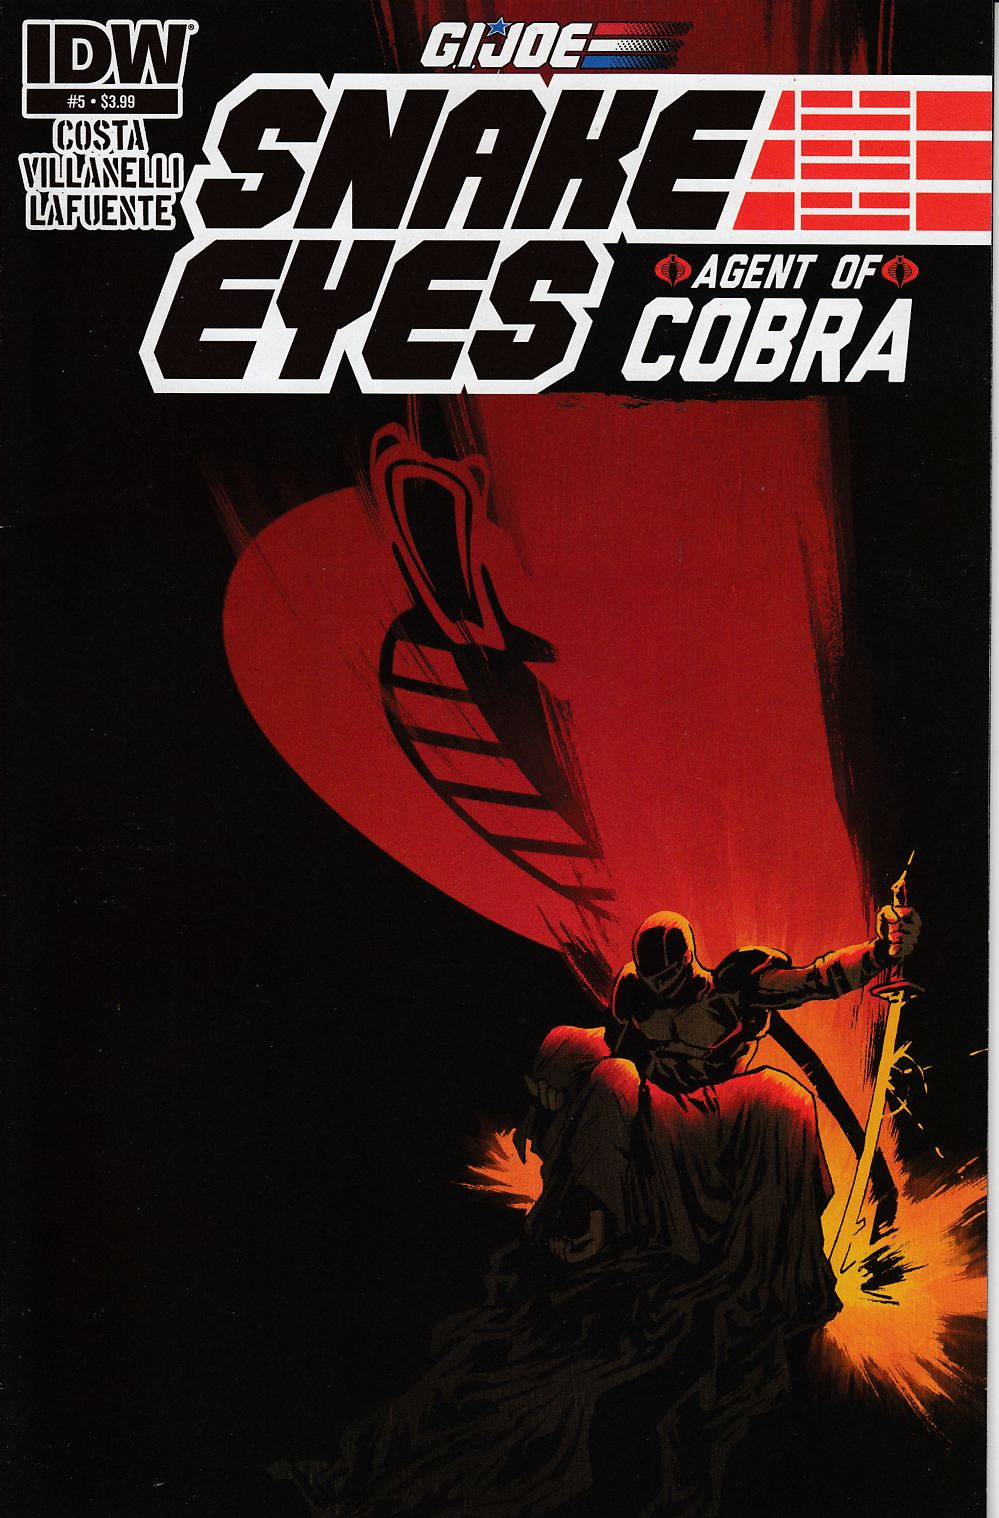 GI Joe Snake Eyes Agent Of Cobra #5 Very Fine (8.0) [IDW Comic]